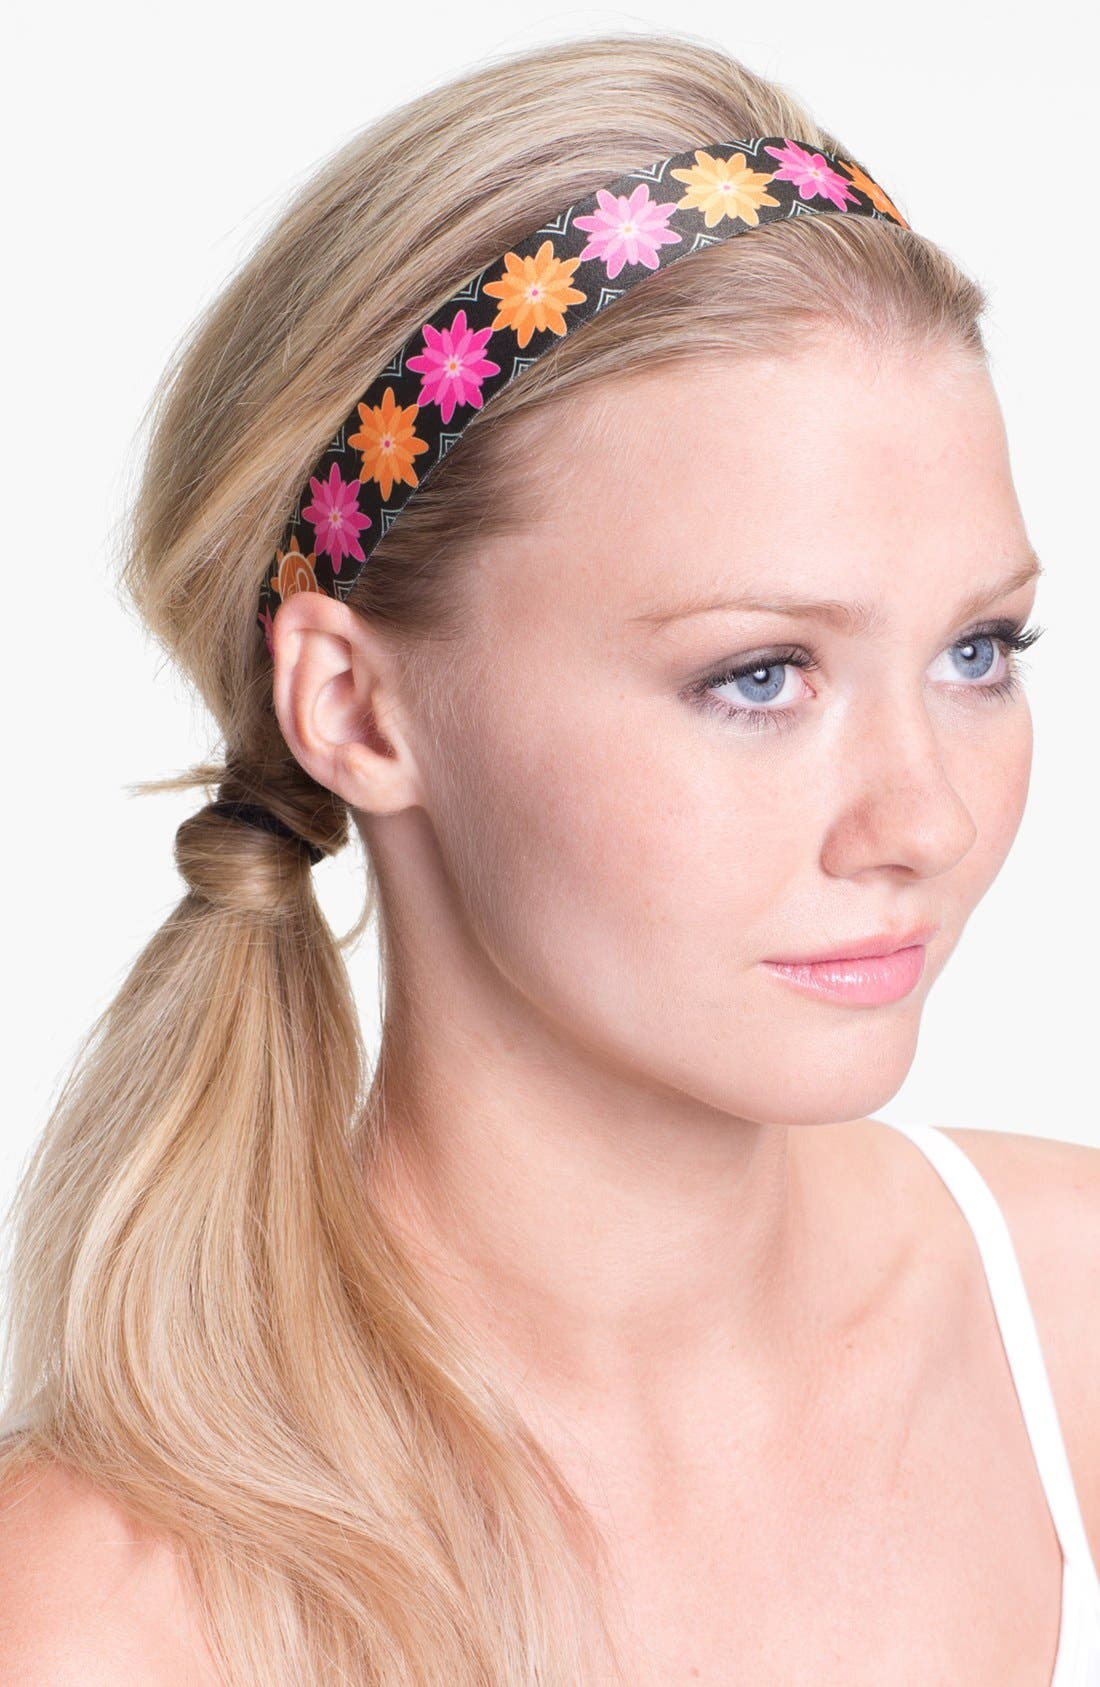 Alternate Image 1 Selected - Sweaty Bands 'Floral Frenzy' Head Wrap